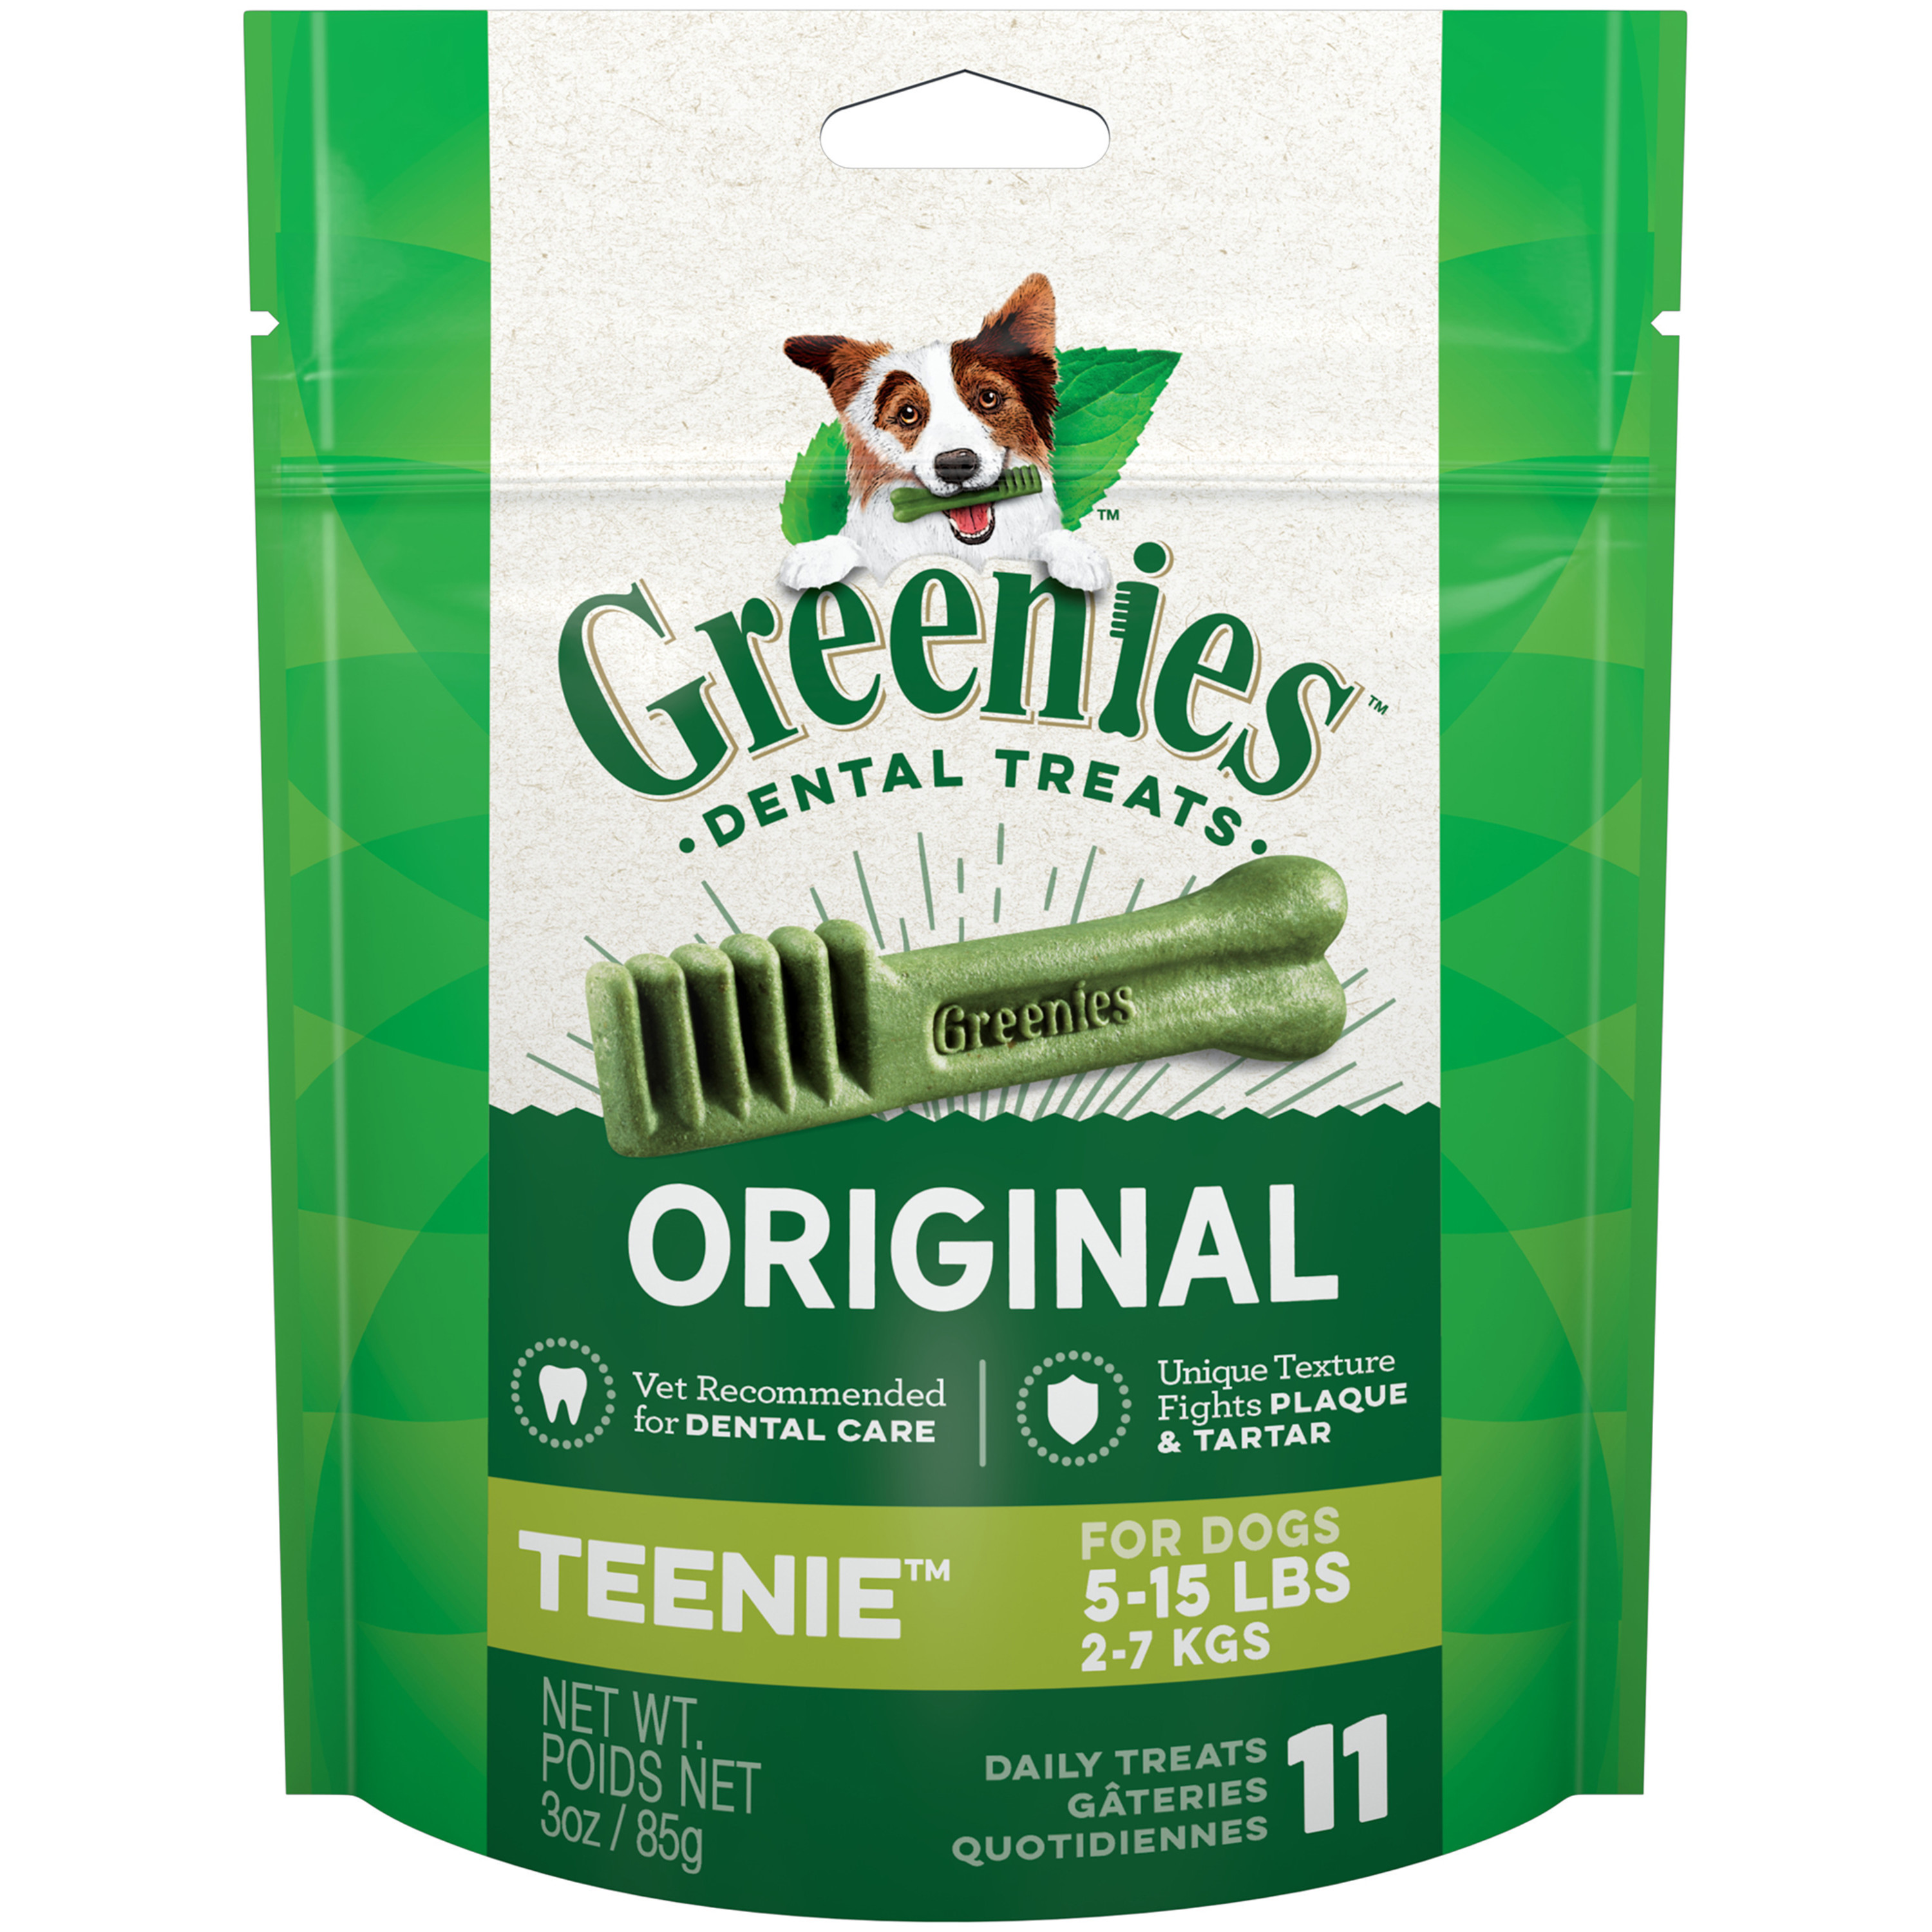 GREENIES Original TEENIE Dental Dog Treats, 3 oz. Pack (11 Treats)